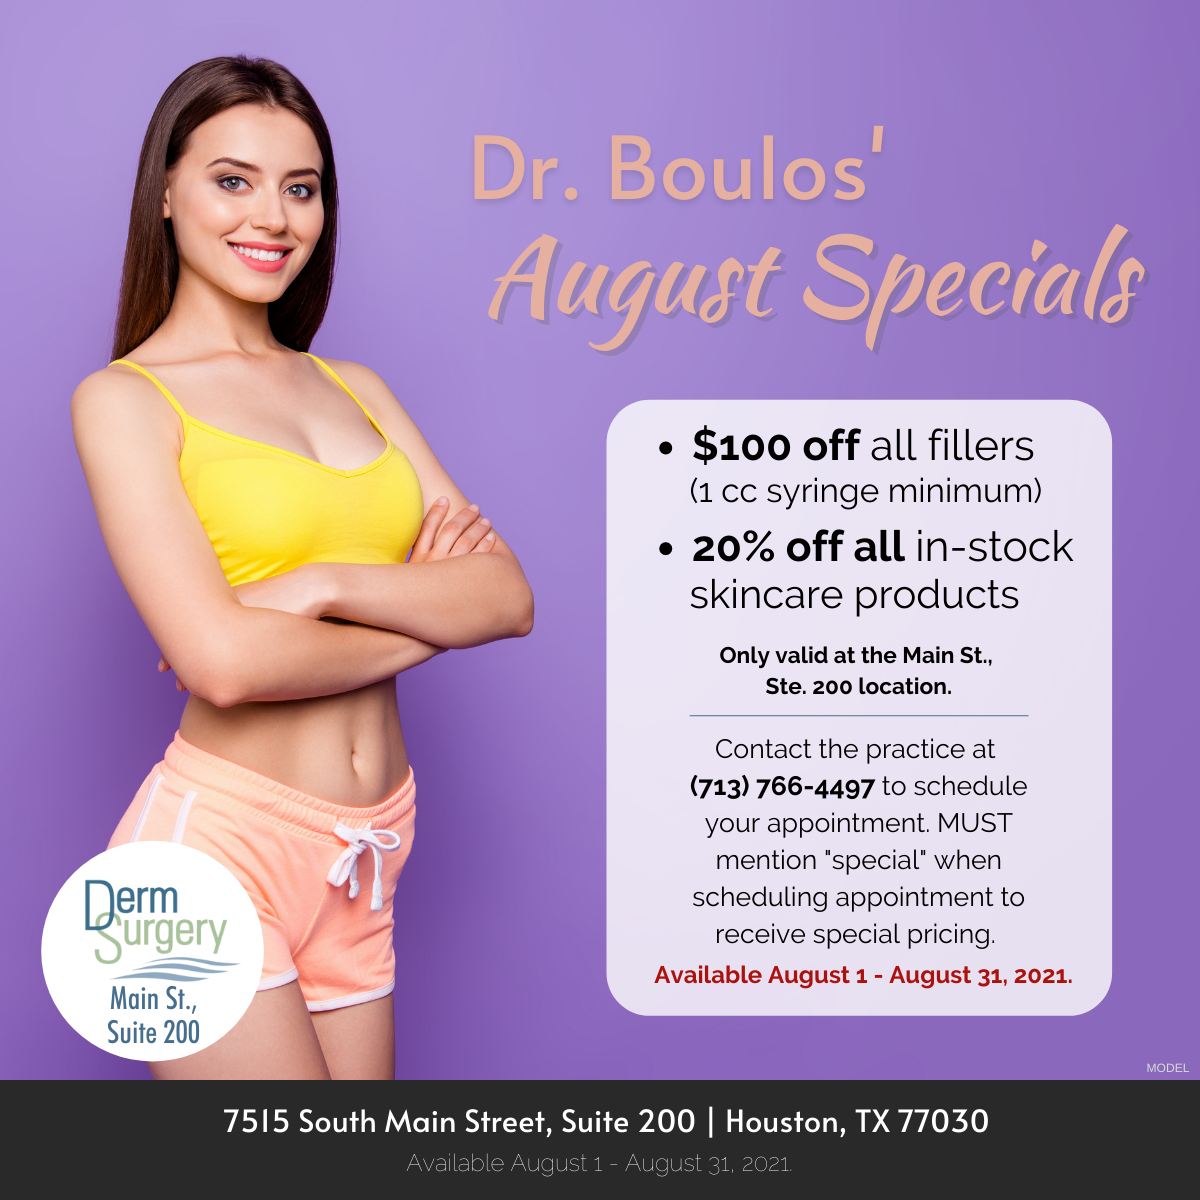 Dr. Boulos' August Specials